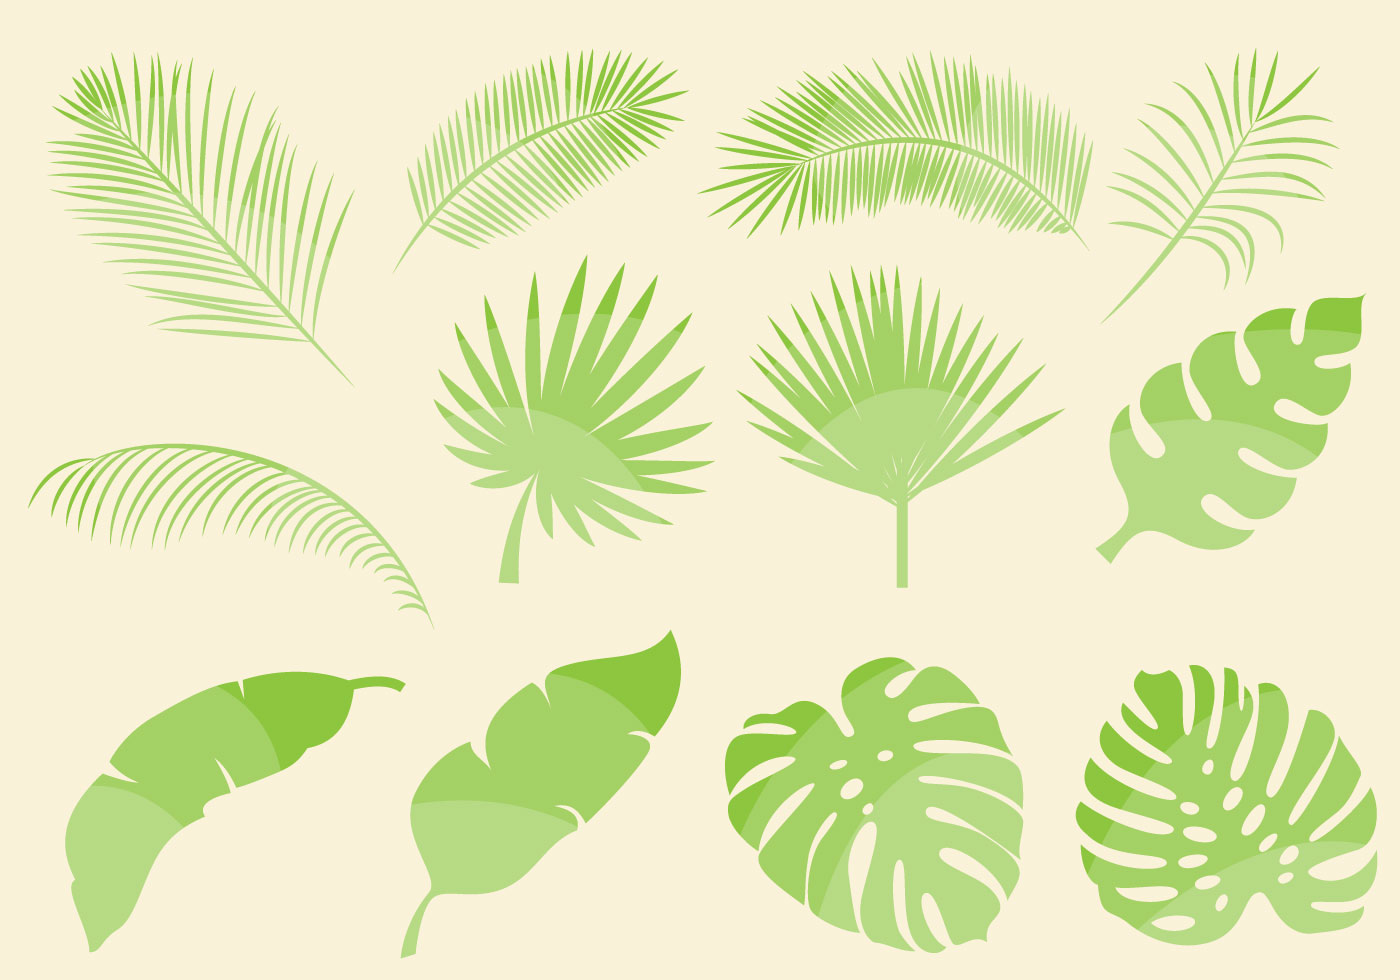 ... Download Free Vector Art, Stock Graphics ... Tropical Leaves Clip Art